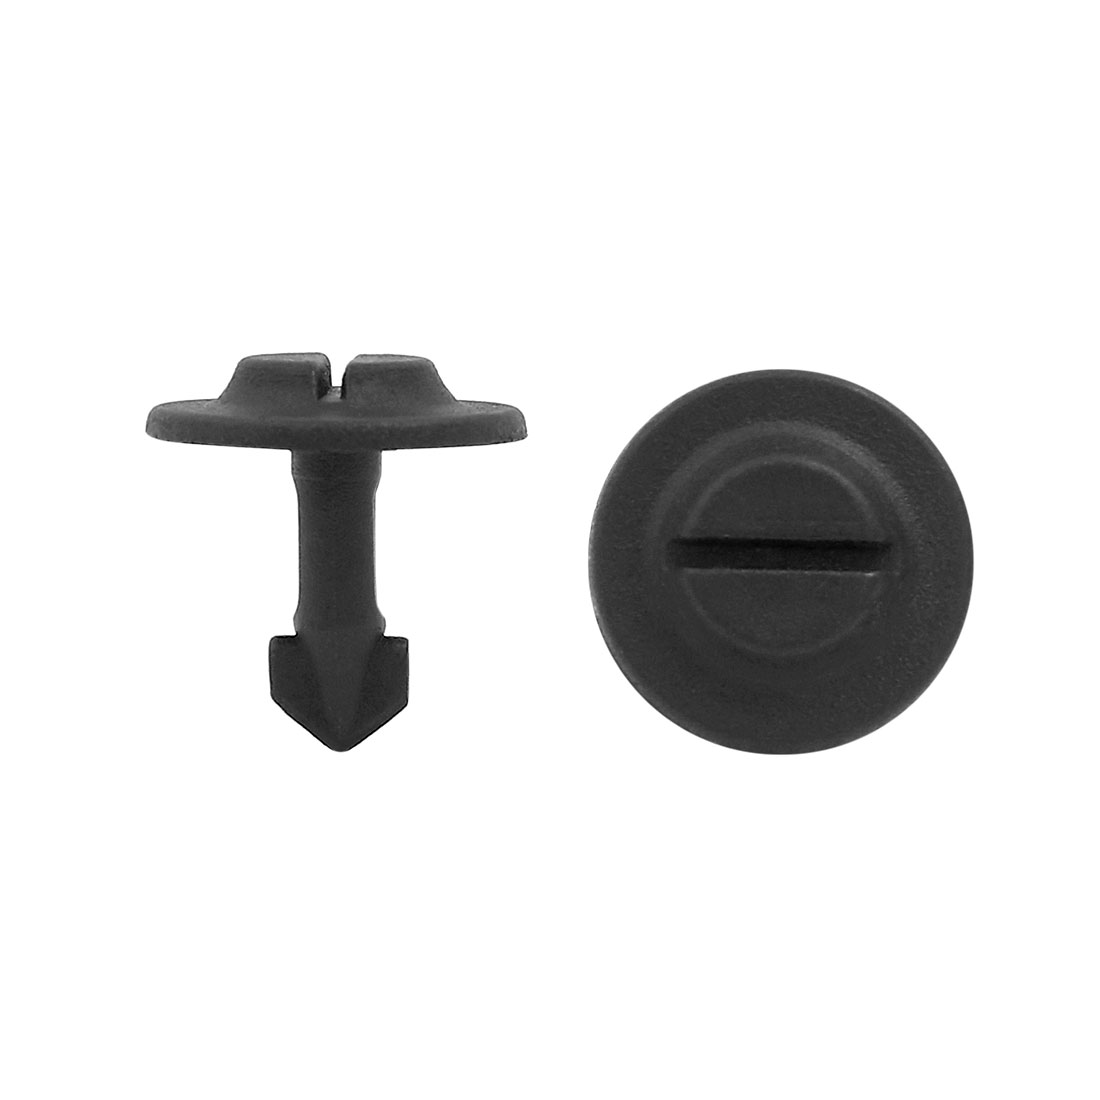 100Pcs 6mm Hole 0.24inches Dia Plastic Rivets Fastener Clips for Auto Fender